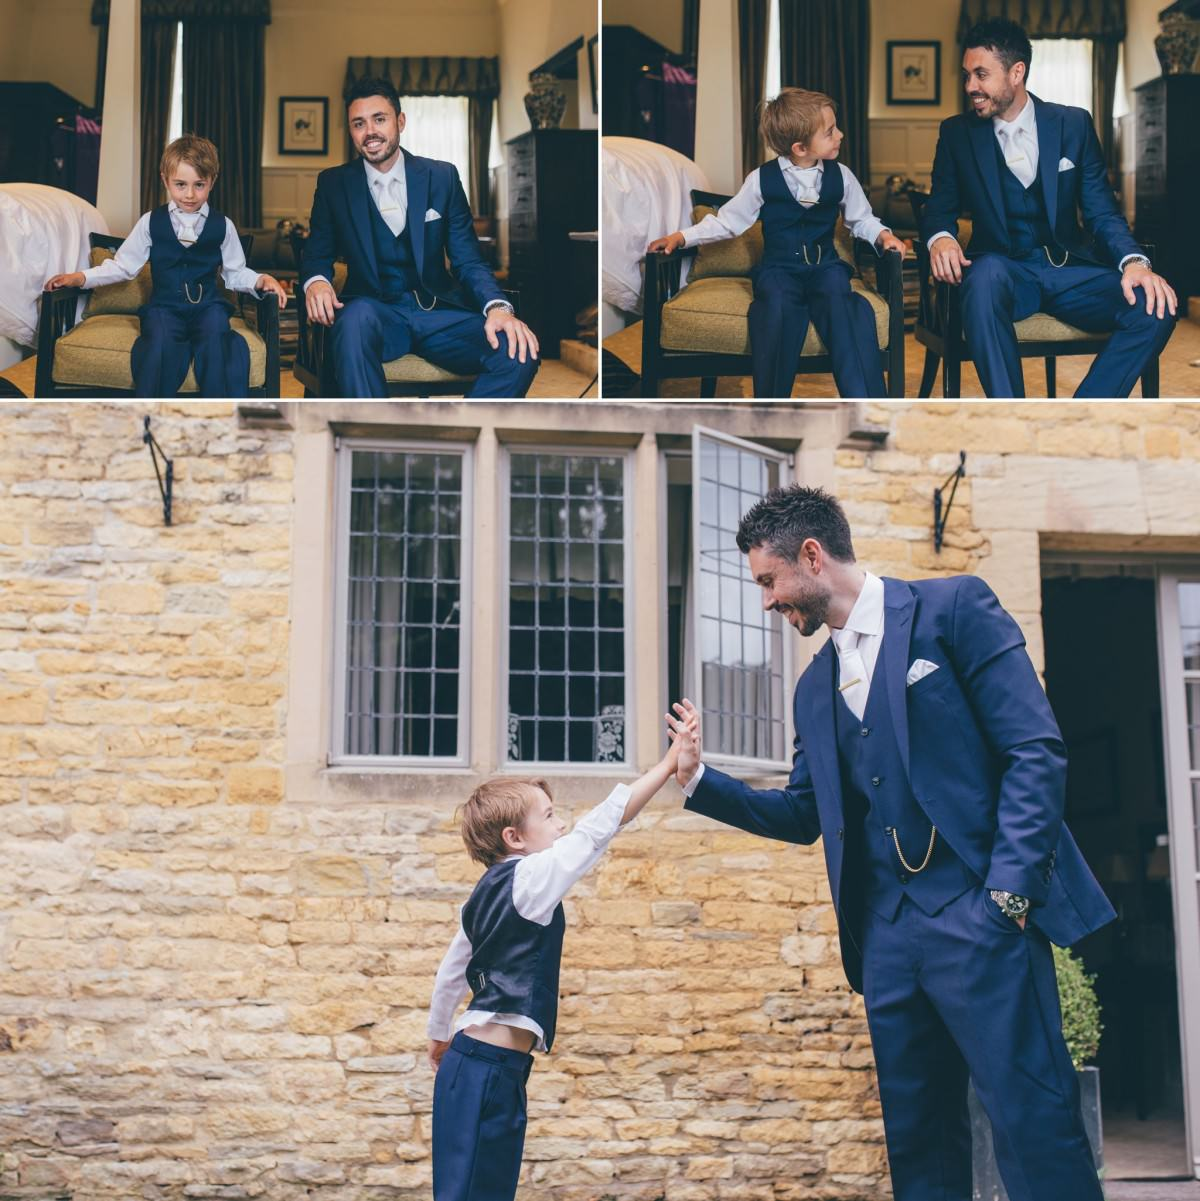 welsh_wedding_photographer_rachel_lambert_photography_lower_slaughter_manor_house_cotswolds_harriet_dean_ 6